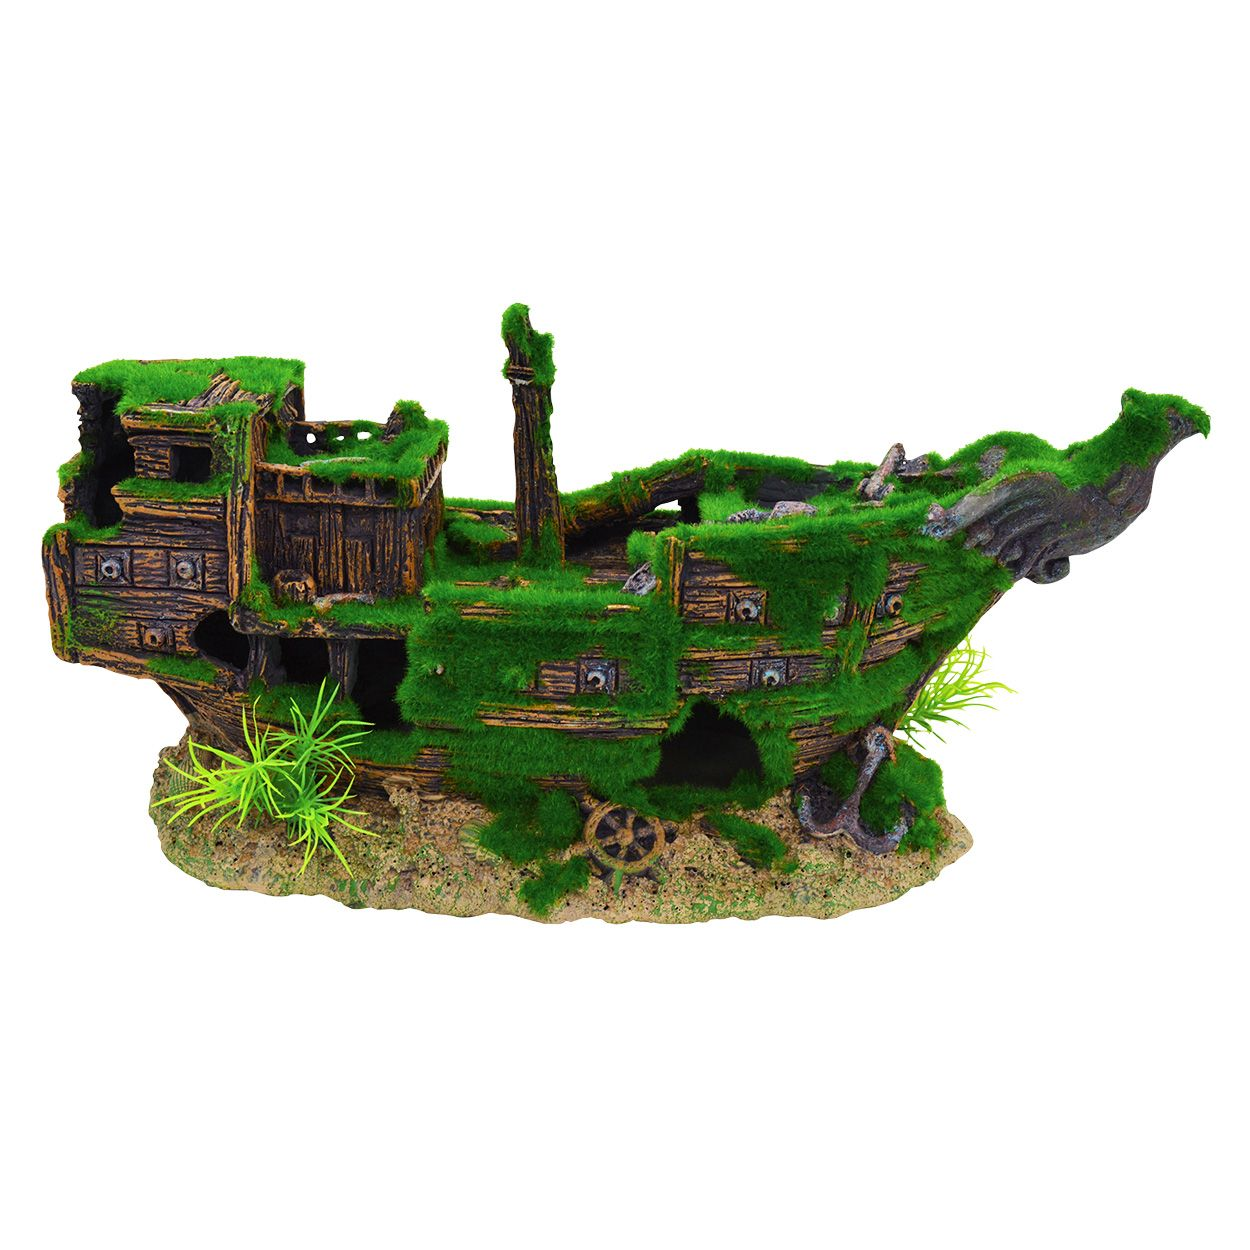 Underwater Treasures Mossy Shipwreck